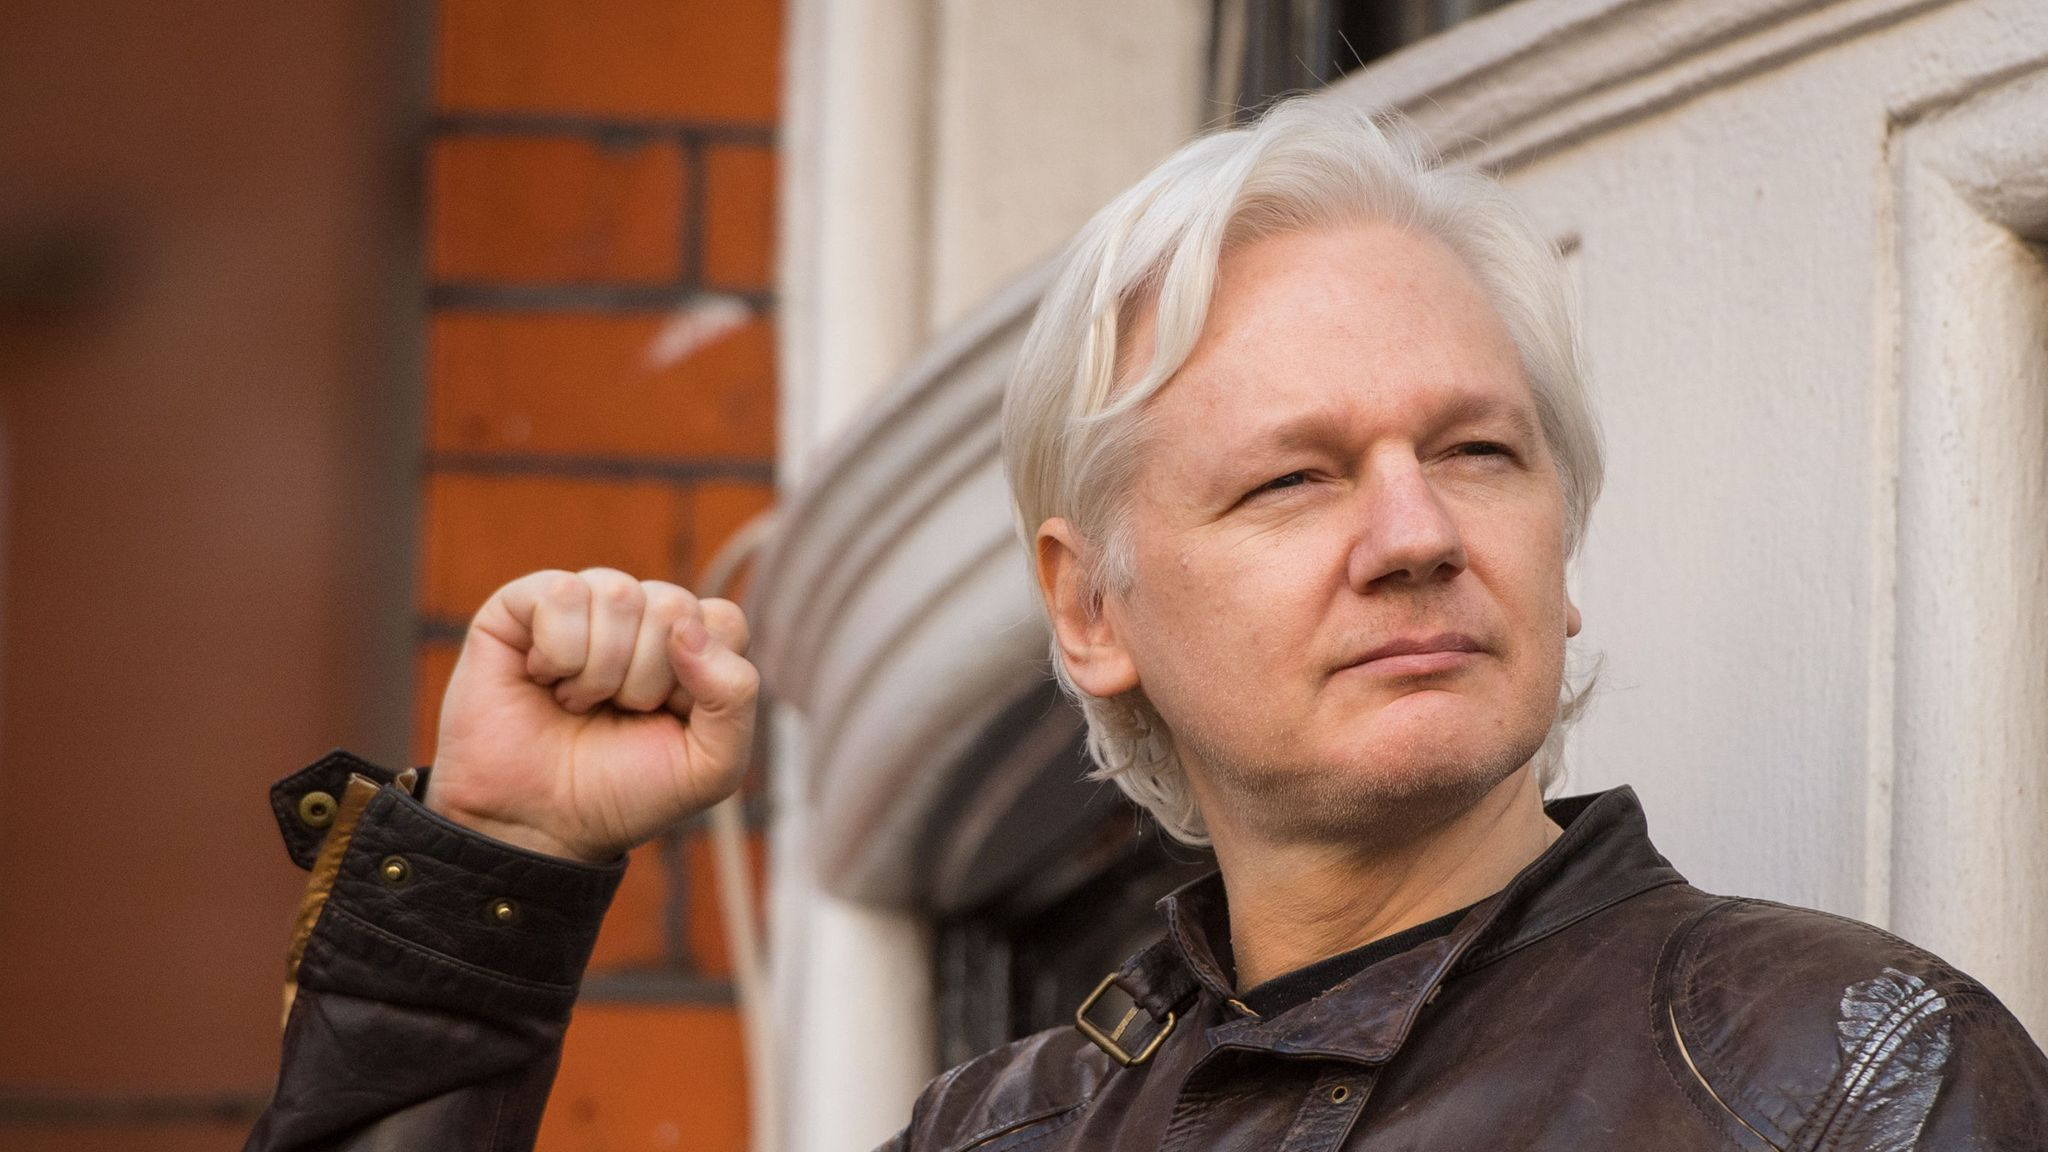 US: Plea to pardon Julian Assange triggers debate on government mass surveillance and control of deep state